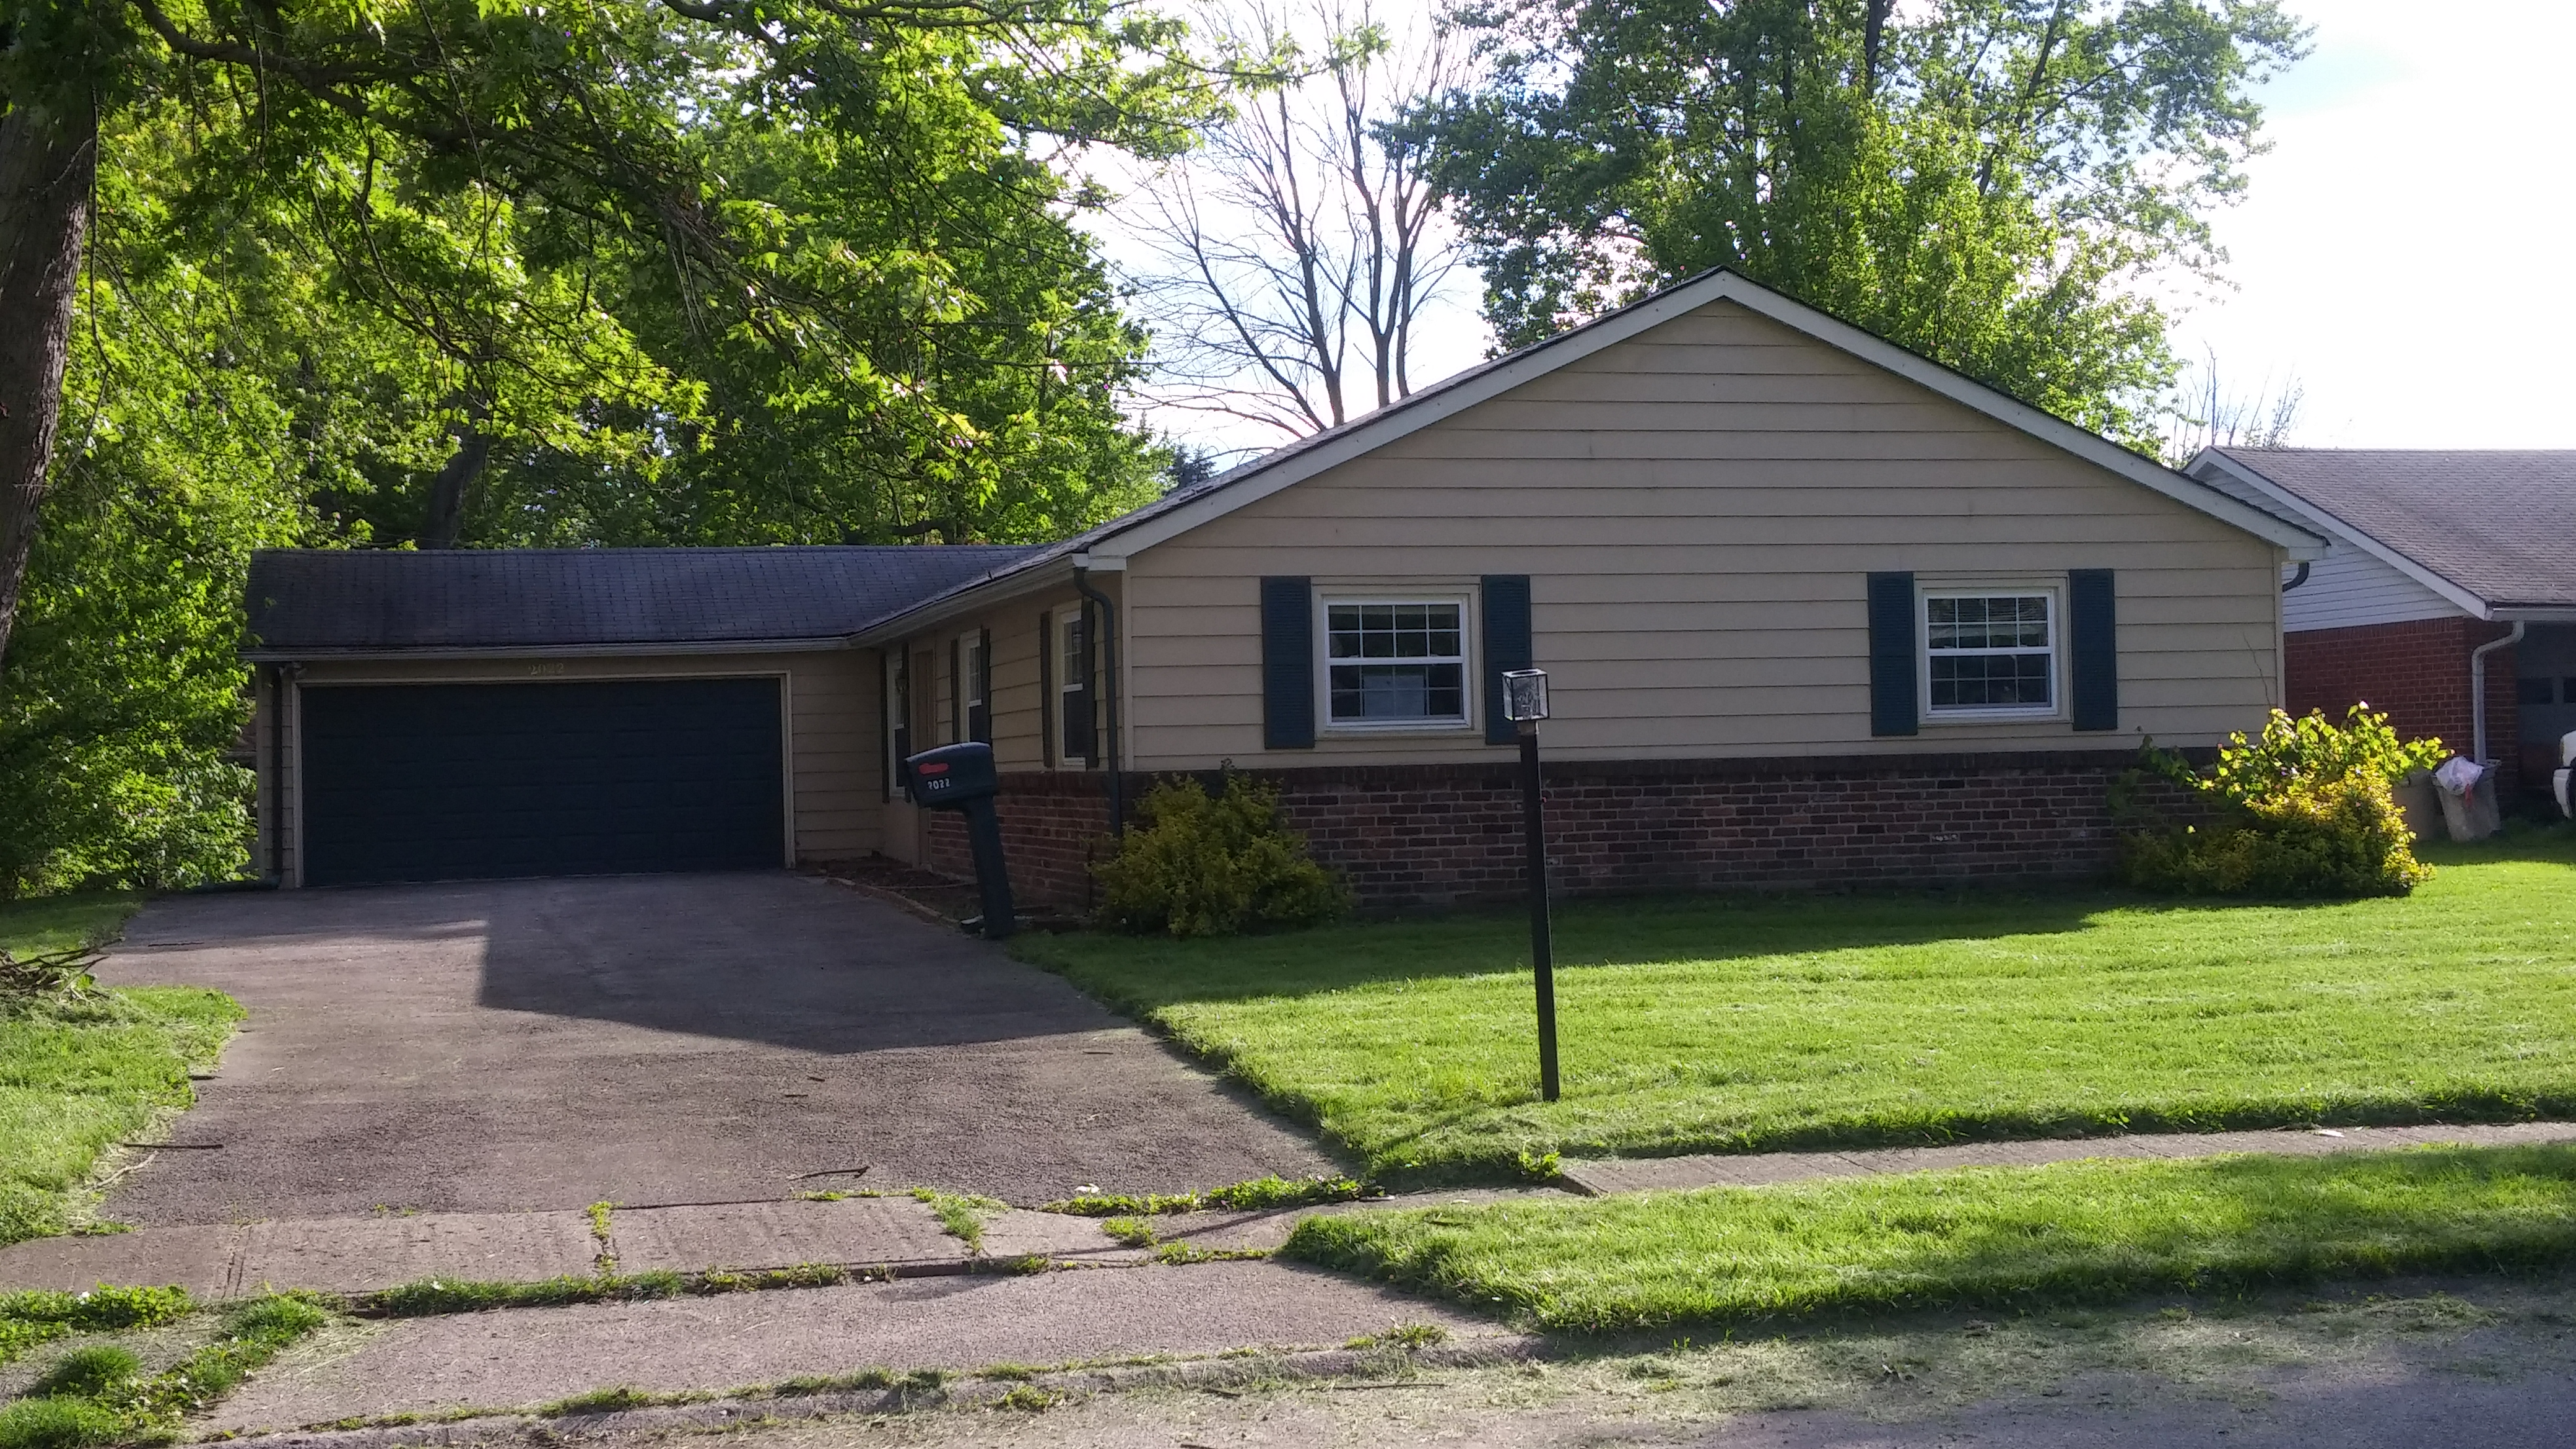 2022 Schwier Ct., Indianapolis, Indiana 46229